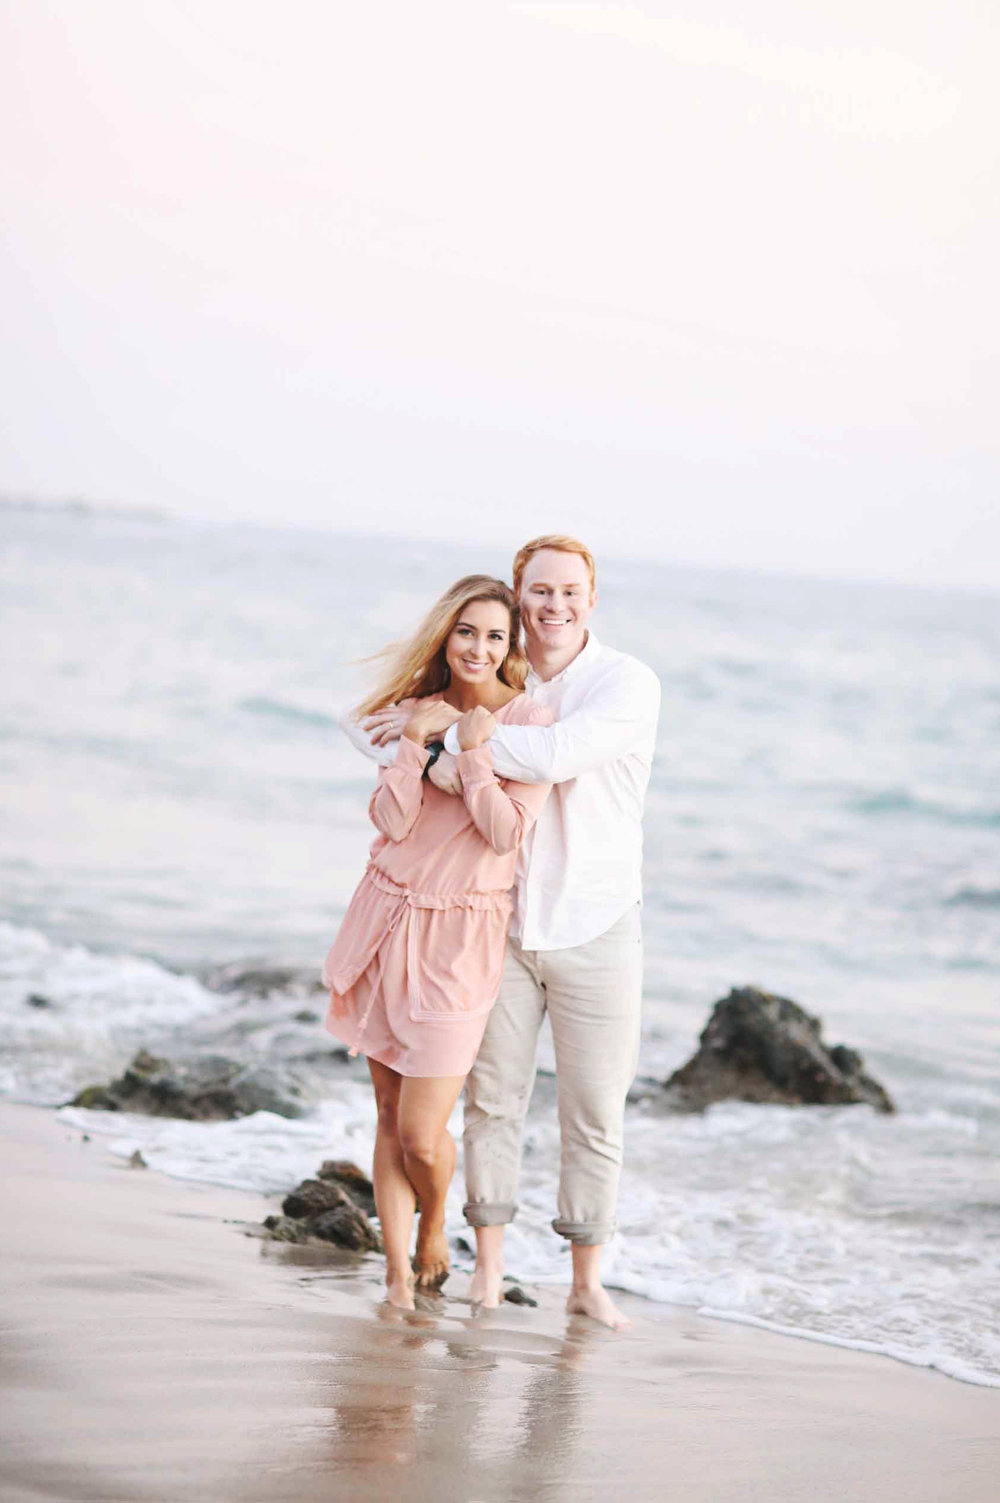 Engagement photo of a couple at an Orange County beach